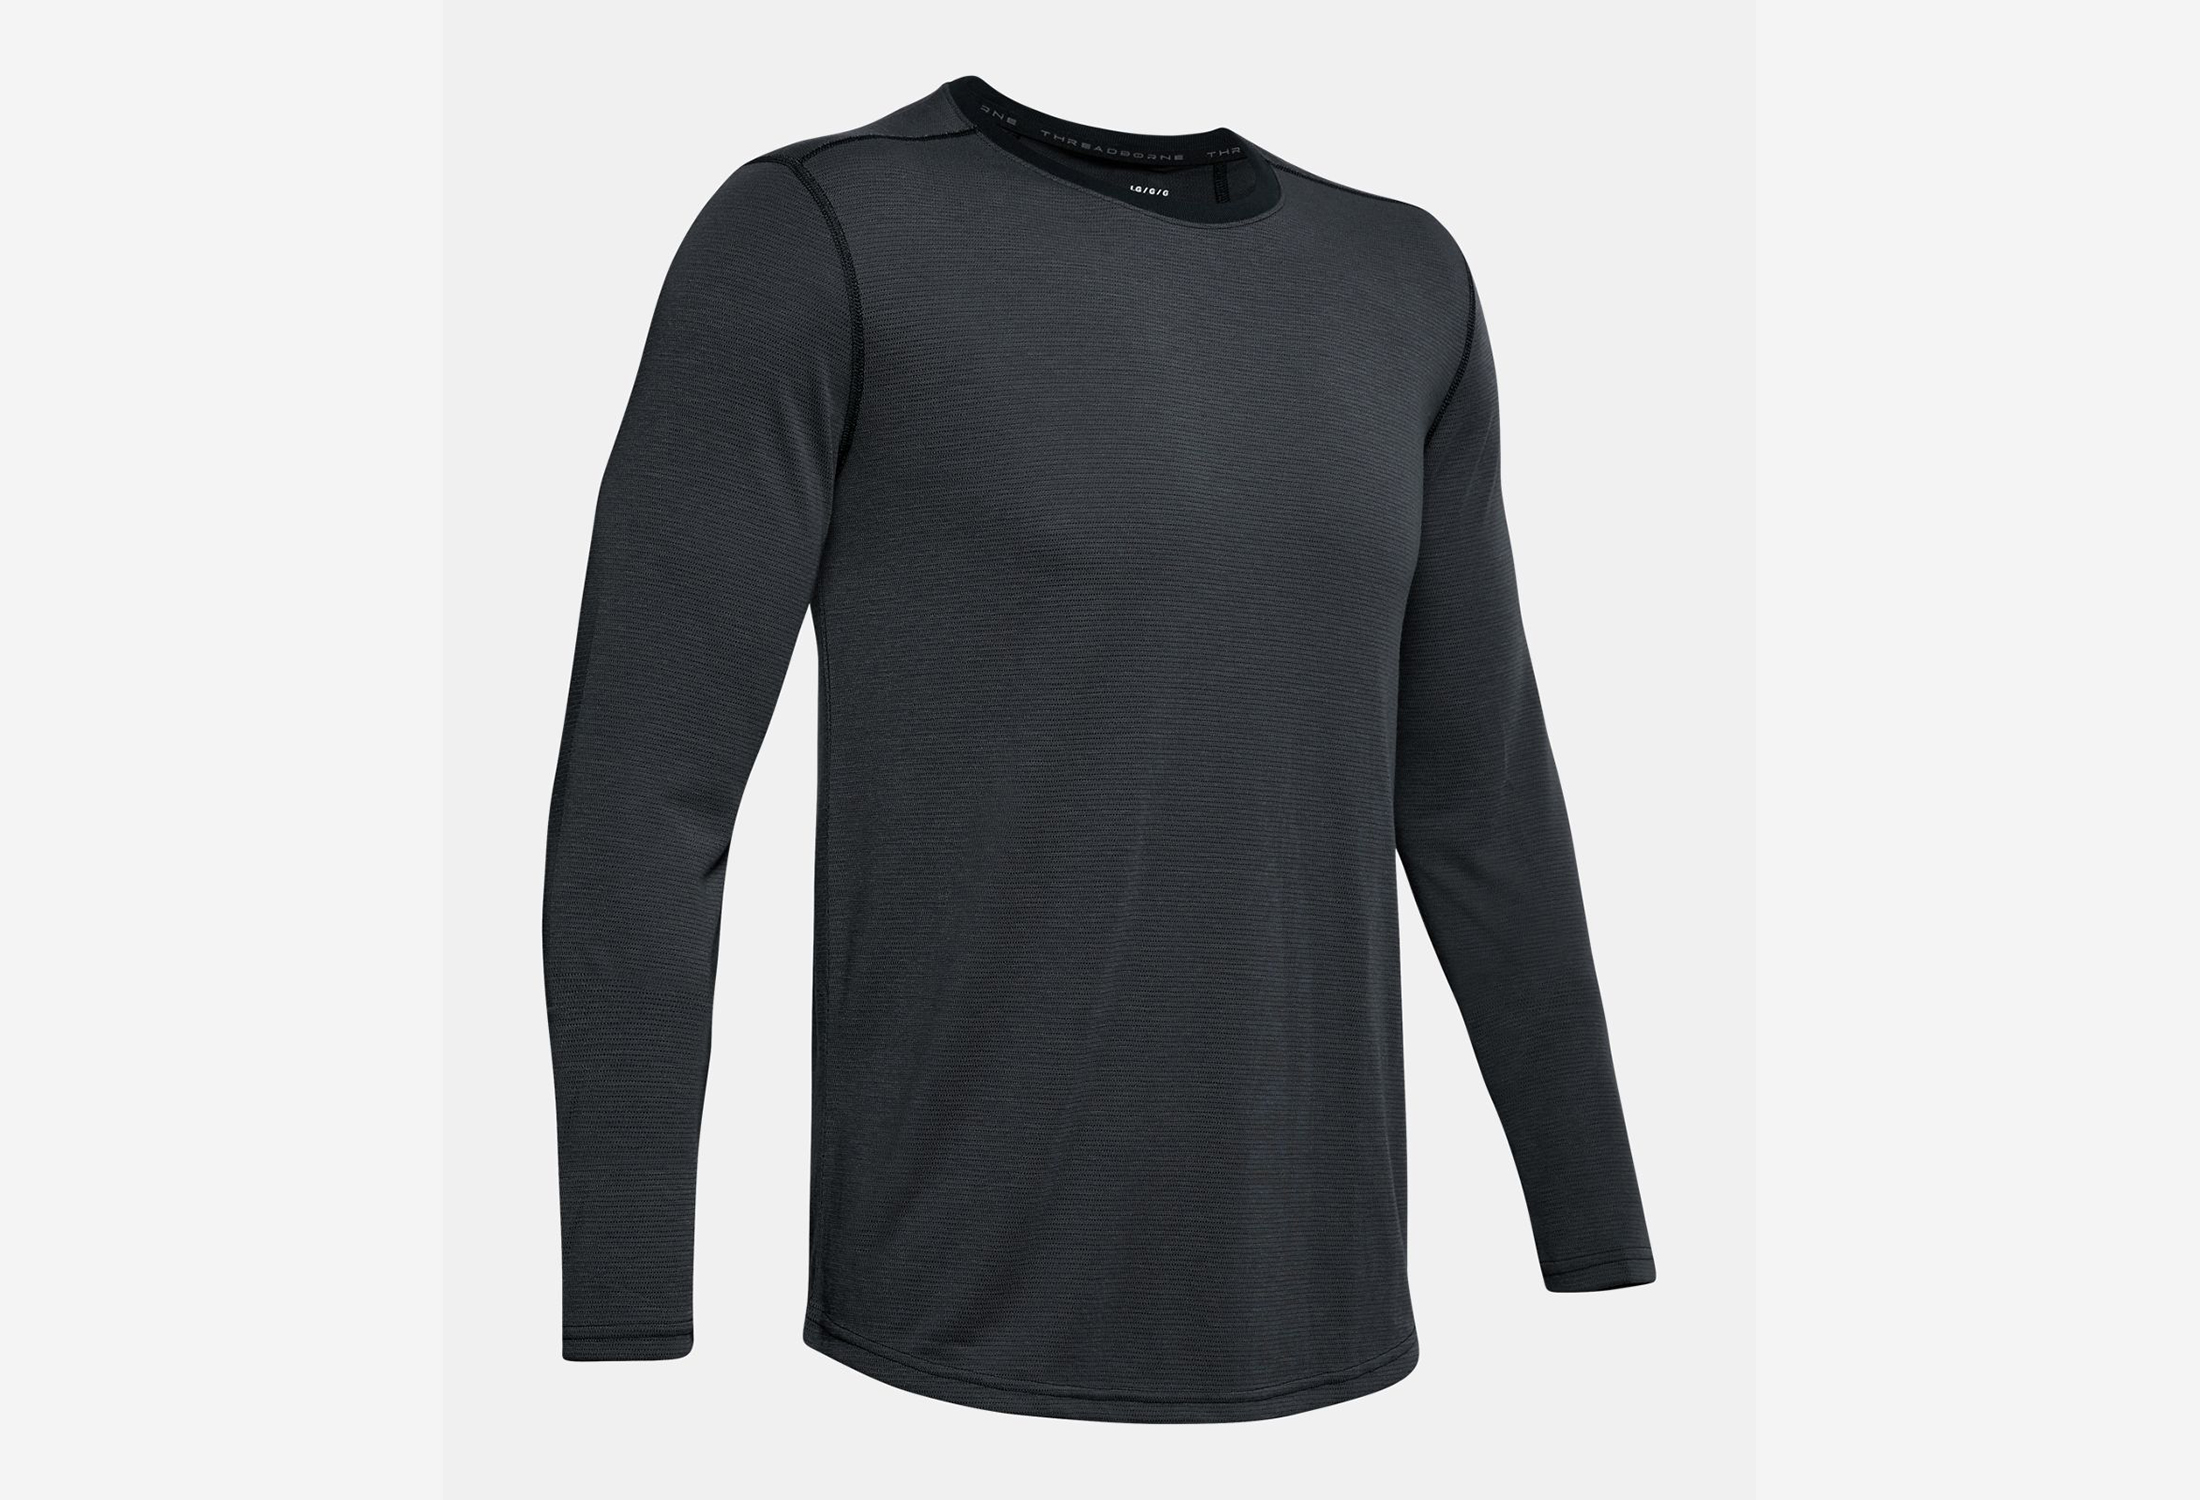 Under Armour Siro Jacquard Long Sleeve Shirt